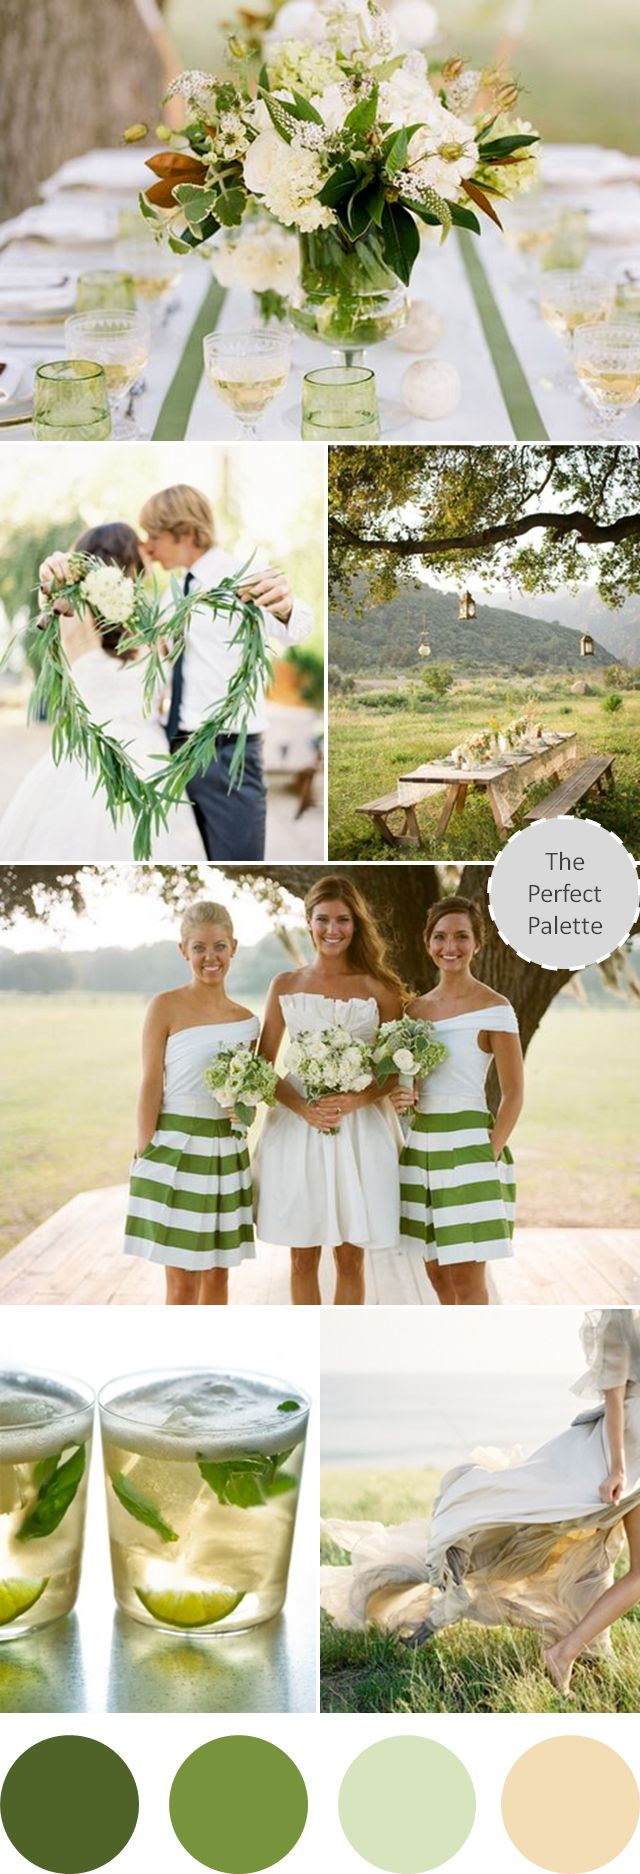 Wedding Colors I Love | Shades of Green & Ivory http://www.theperfectpalette.com/2013/06/wedding-colors-i-love-shades-of-green.html